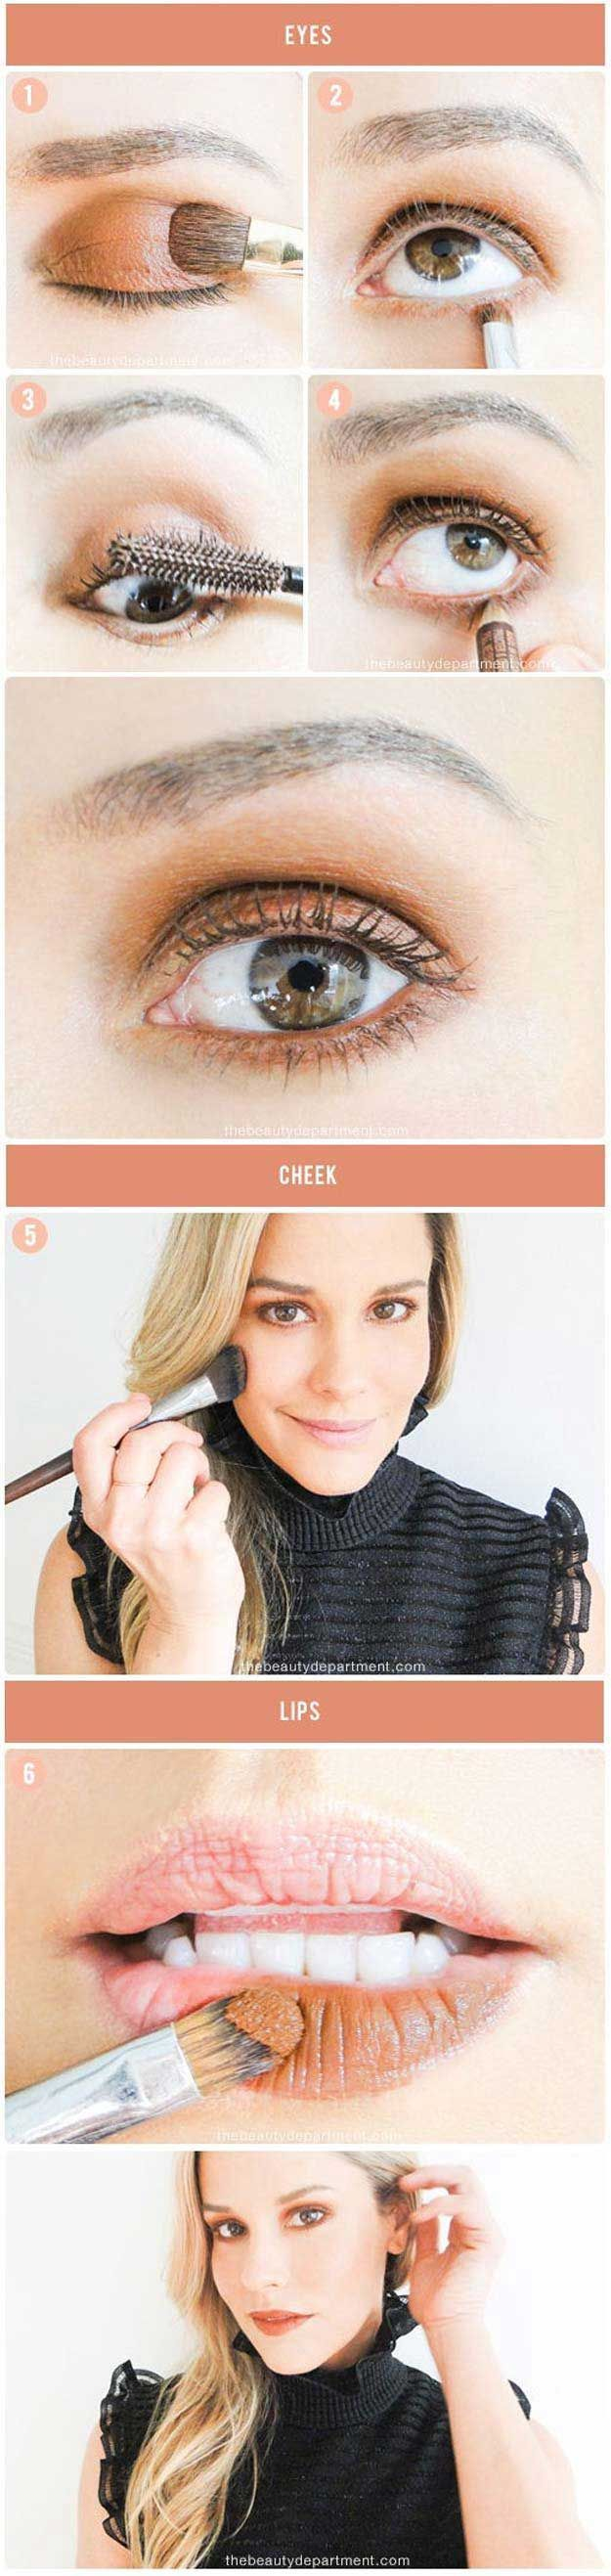 Makeup Tutorials for Picture Perfect Selfies - Monochromatic Makeup - Tips, Ideas, And Tricks For Makeup Tutorials For Pictures On Tumblr, Instagram, Pinterest, And Facebook. Try Step By Step Tutorials For Dark Lips, Natural Looks For Beauty In Blonde Hair, And How To Take A Beautiful Photo Or Photograph. Tips, Tricks, And Hacks For Different Faces, Brows, Hair, And Lashes For Selfies. Girls Need To Use Eyeliner To Get That Ariana Grande Or Kim Kardashian Look…